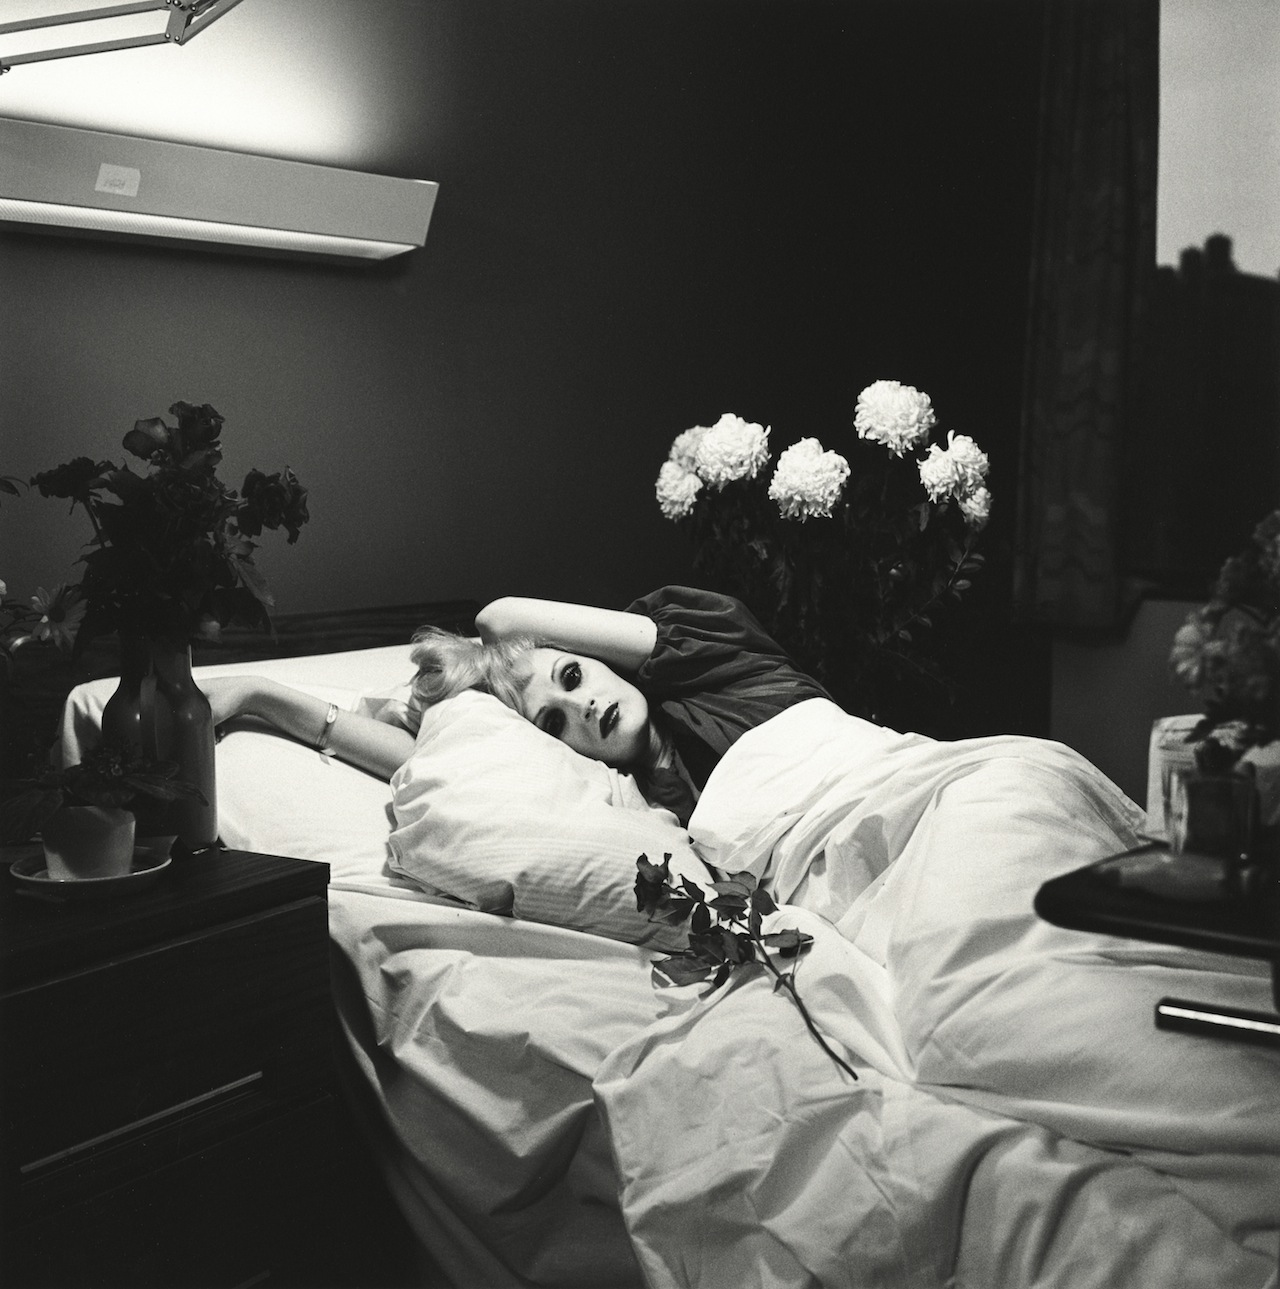 HUJ.017.4 [EPH 0003-GSP2]_Candy Darling on Her Deathbed, 1973_HR